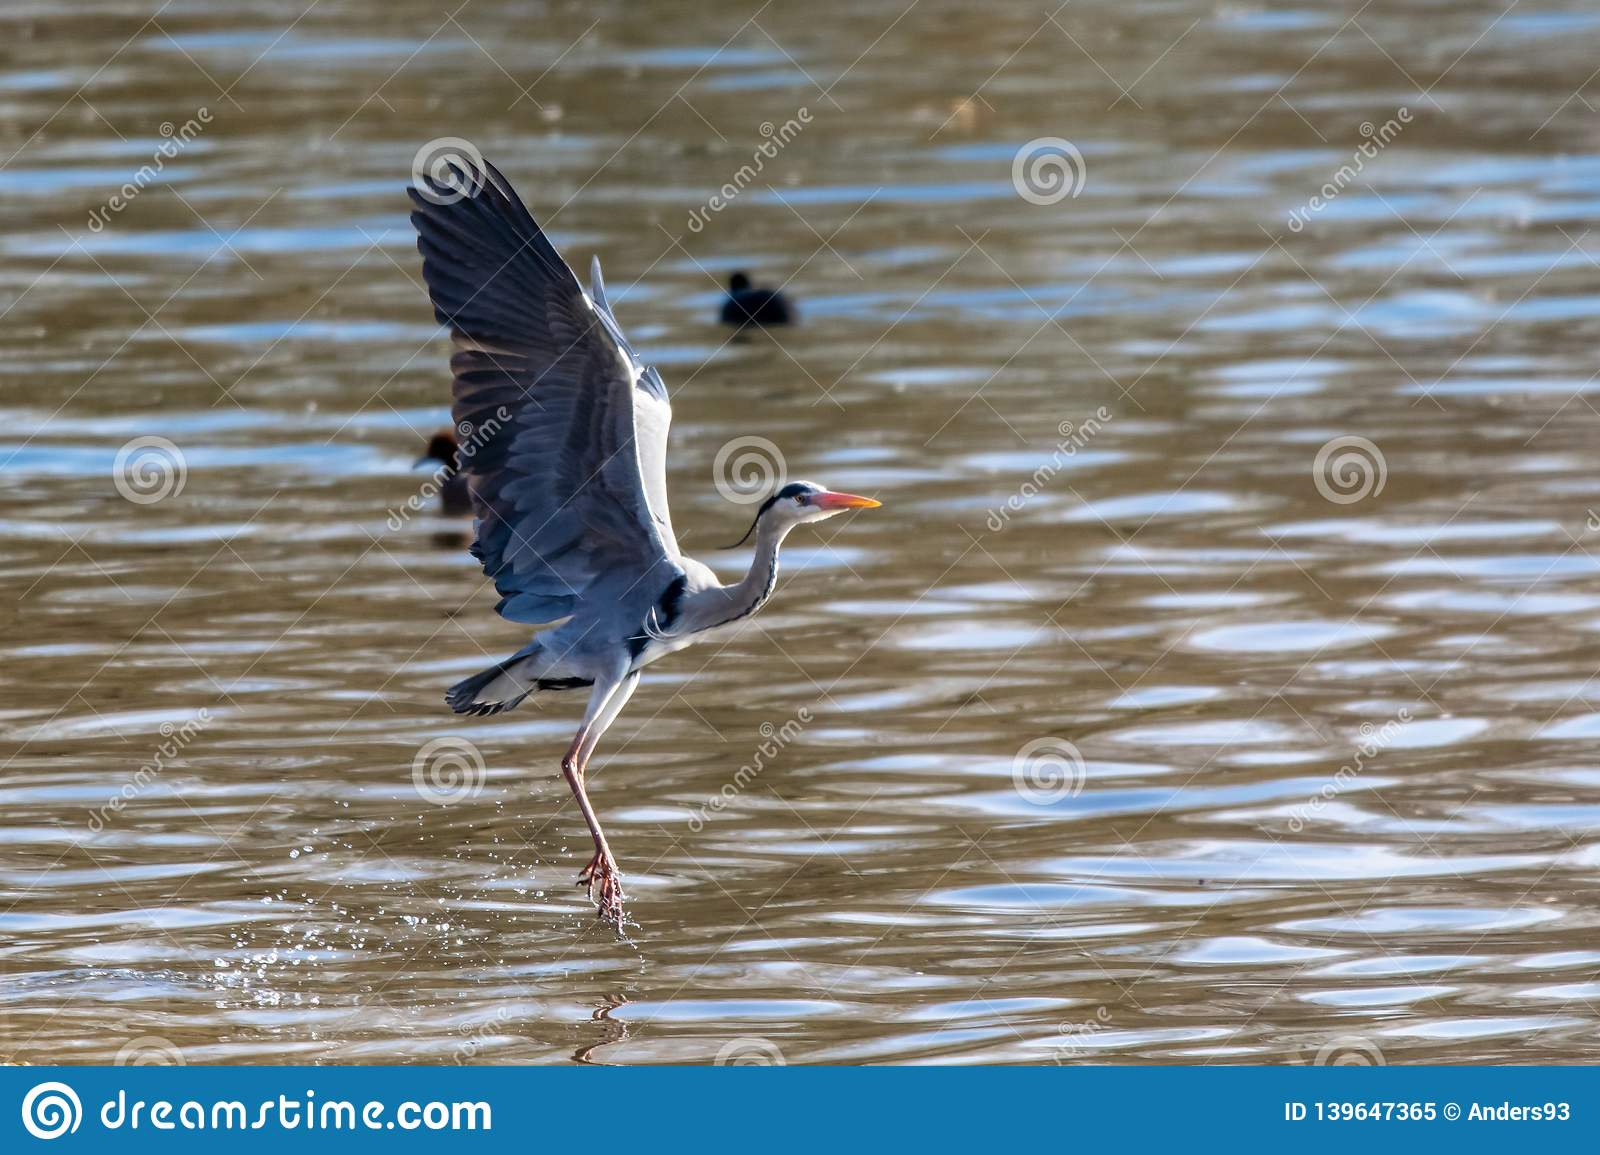 Egret Cartoons: Great Egret In Flight Royalty-Free Stock Photo